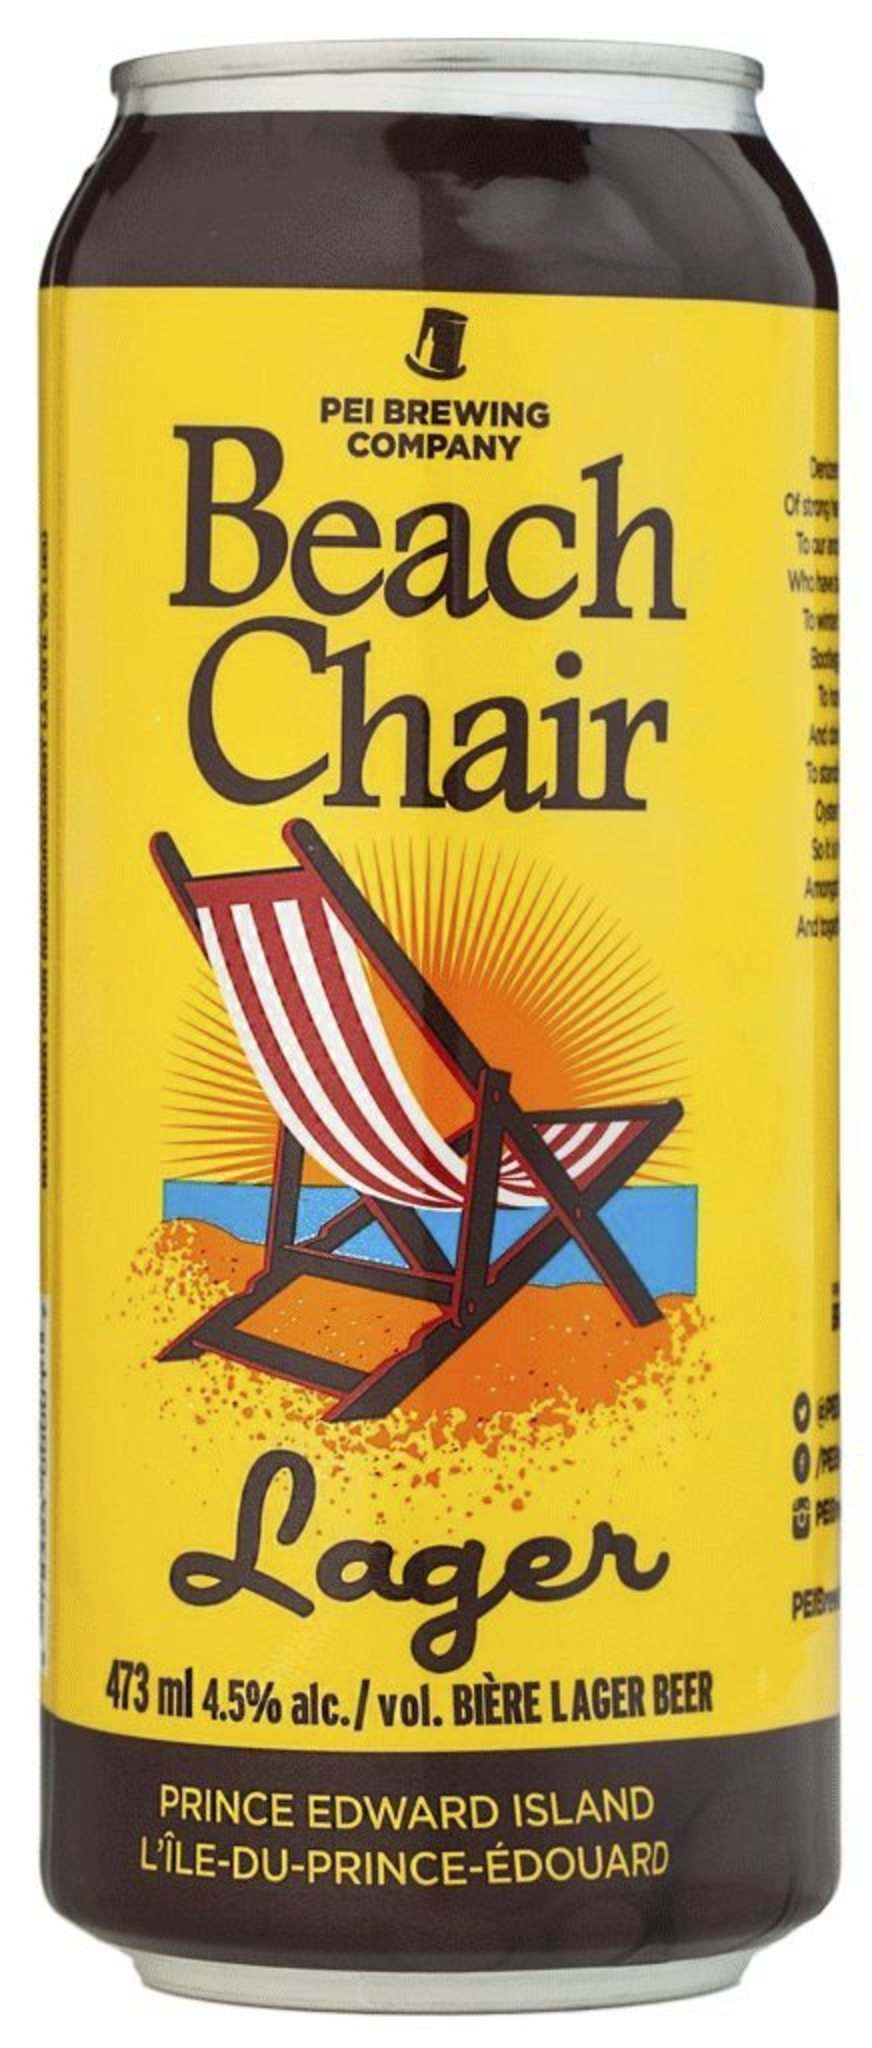 PEI Brewing Company's Beach Chair Lager.</p>